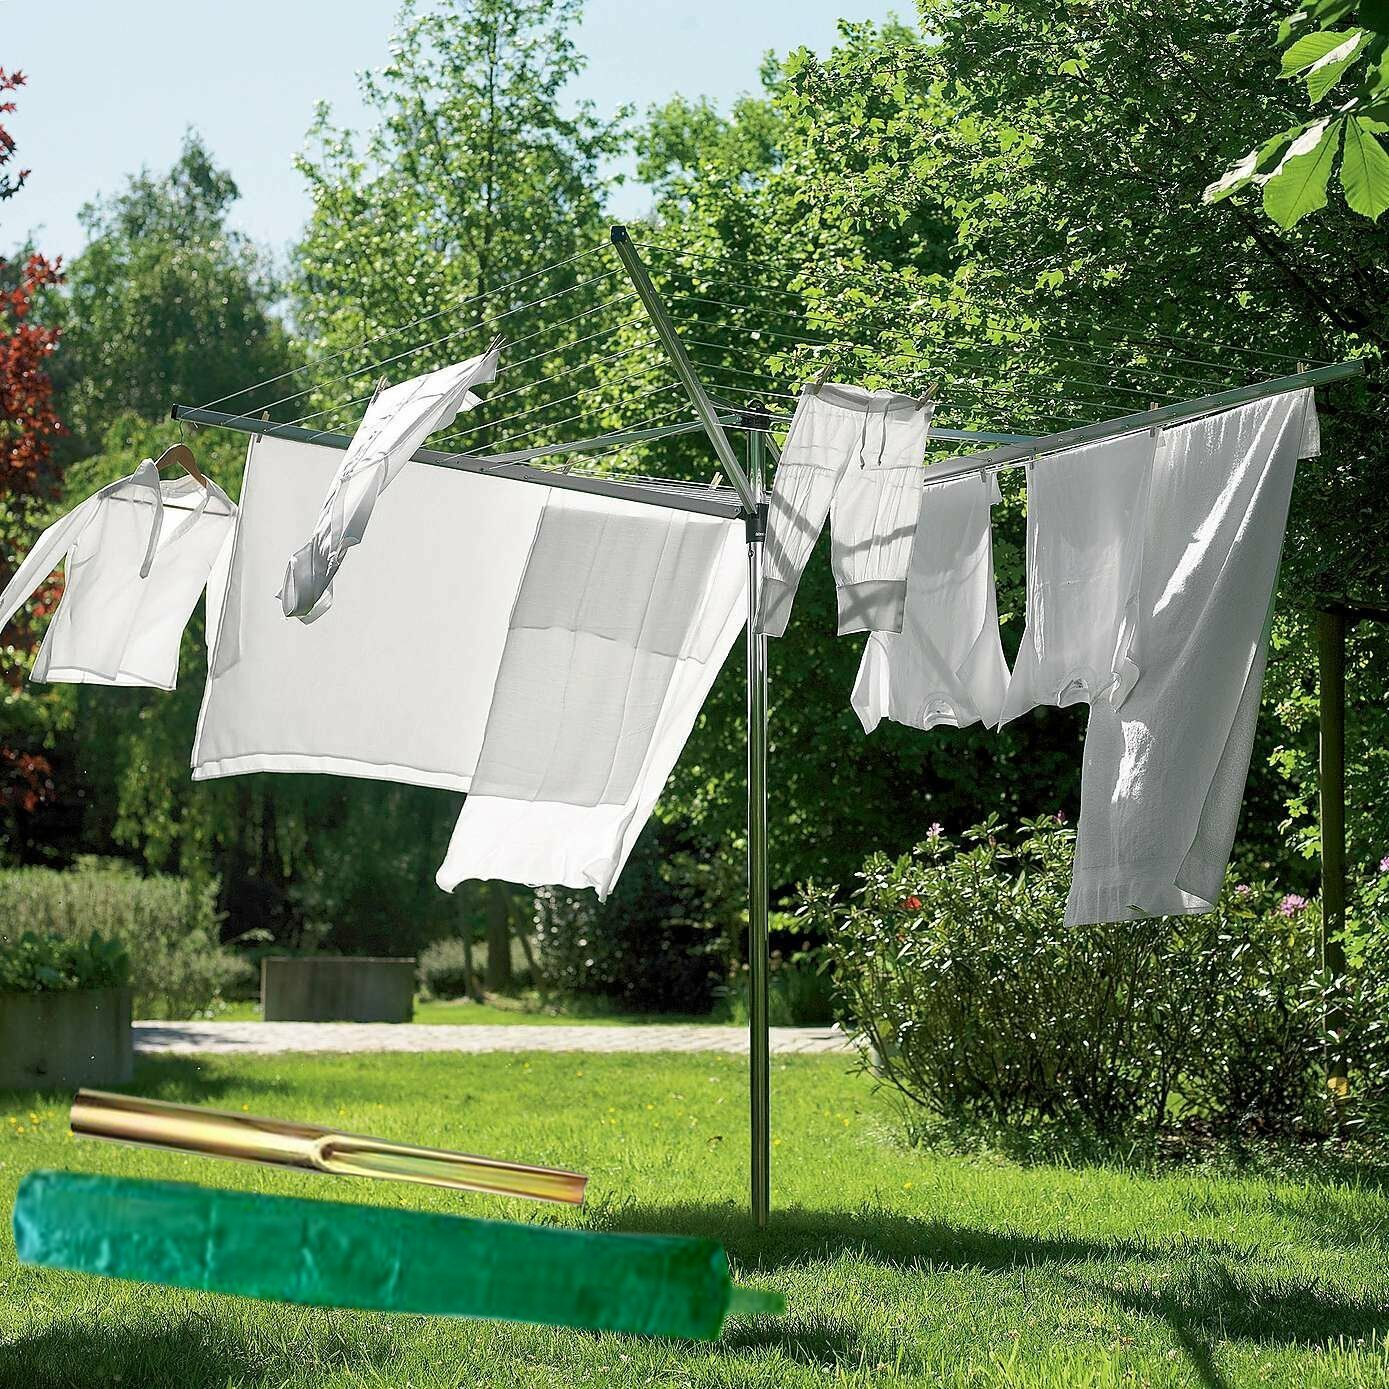 Outdoor Cloth Dryer ~ New arm rotary garden washing line clothes airer dryer